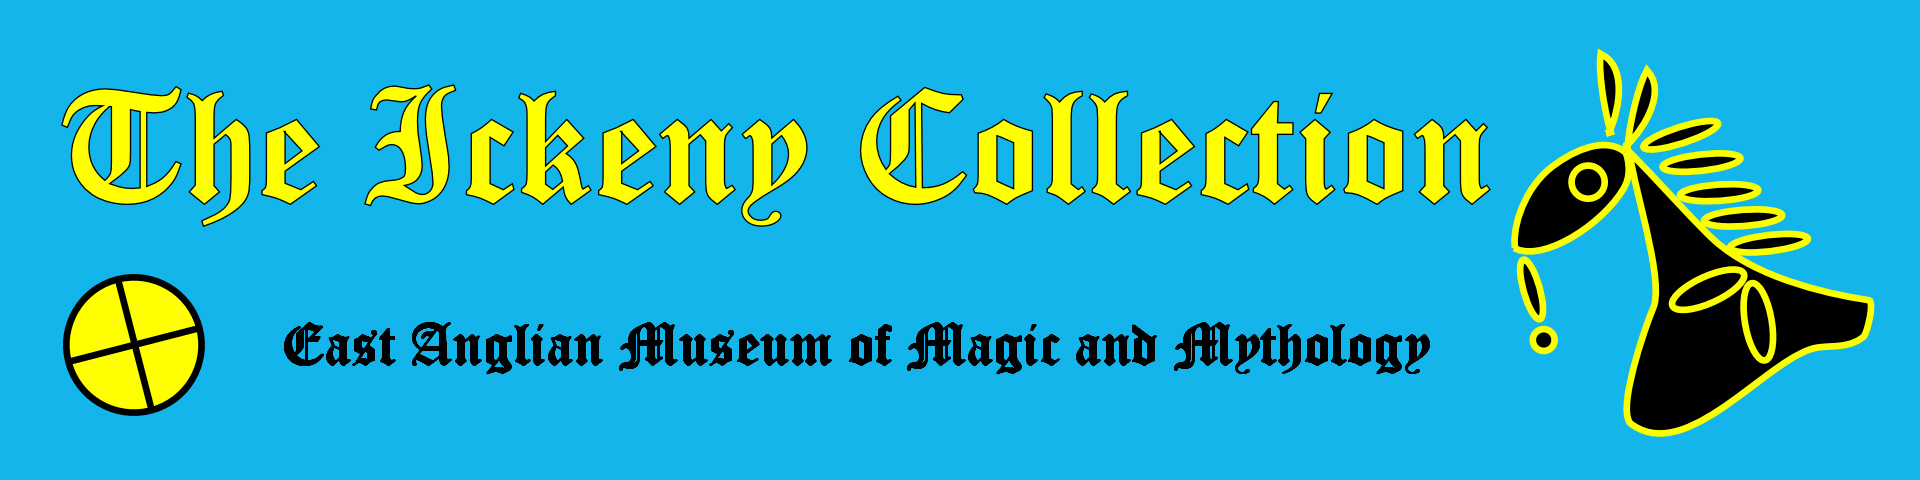 The Ickeny Collection: East Anglian Museum of Magic and Mythology logo